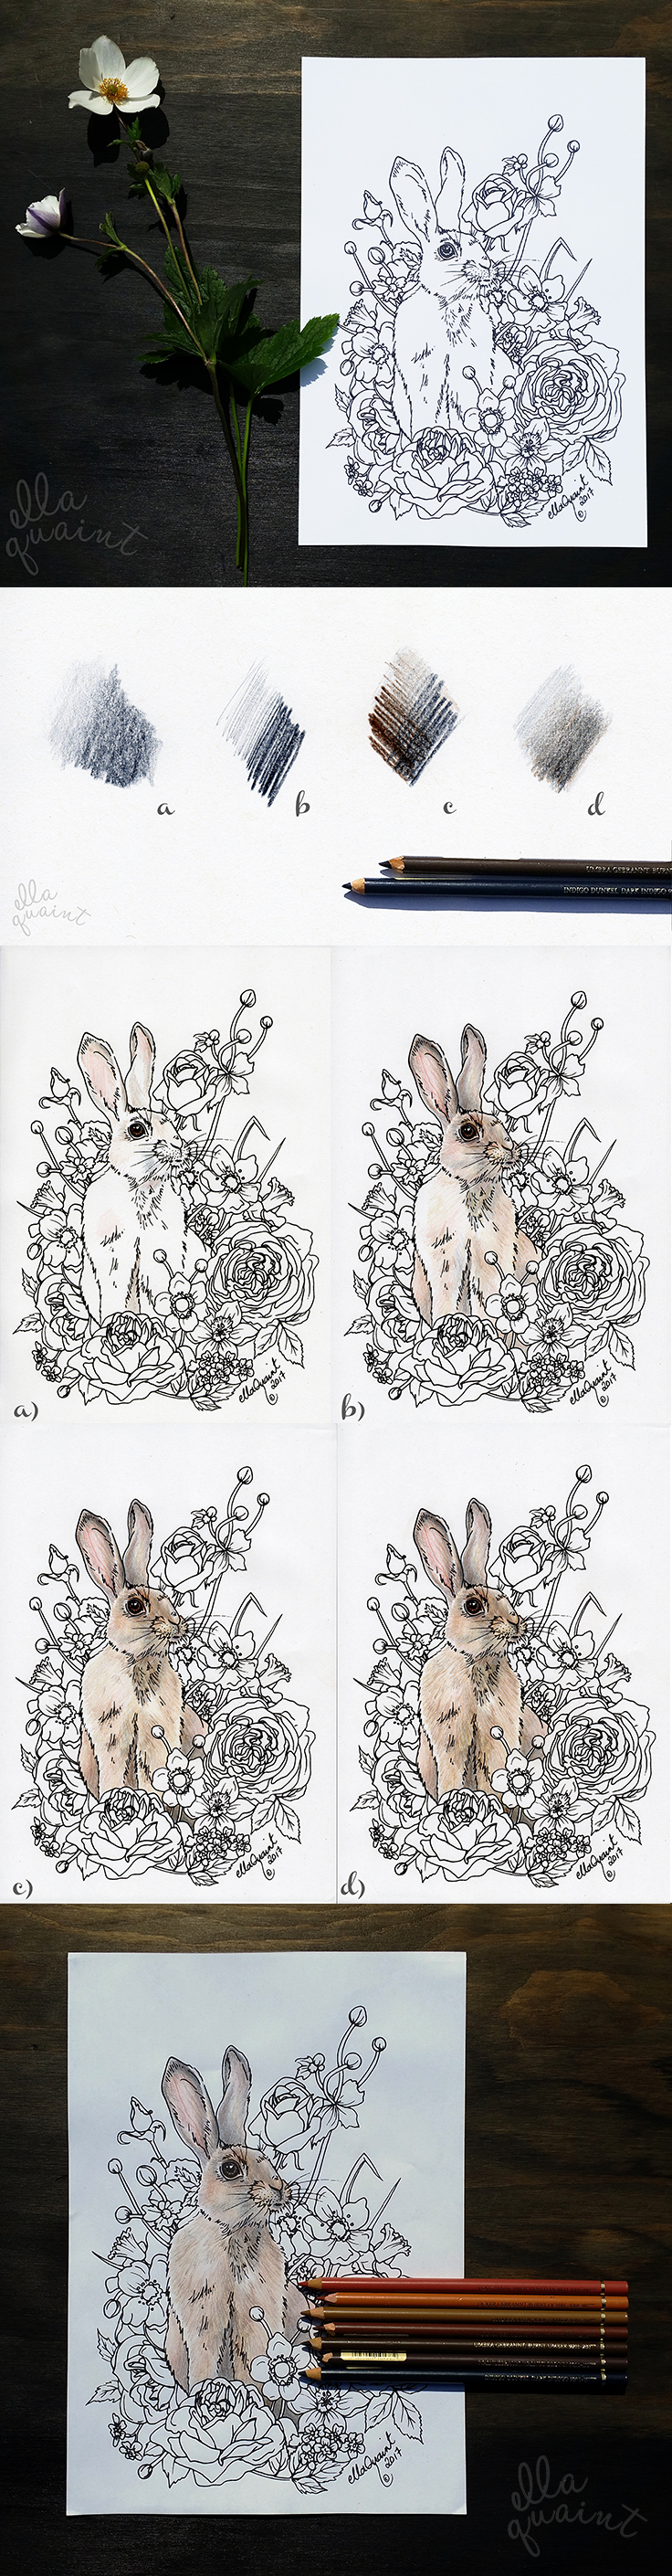 bunny-bouquet-coloured-pencil-tutorial-by-ellaquaint-2017-flat